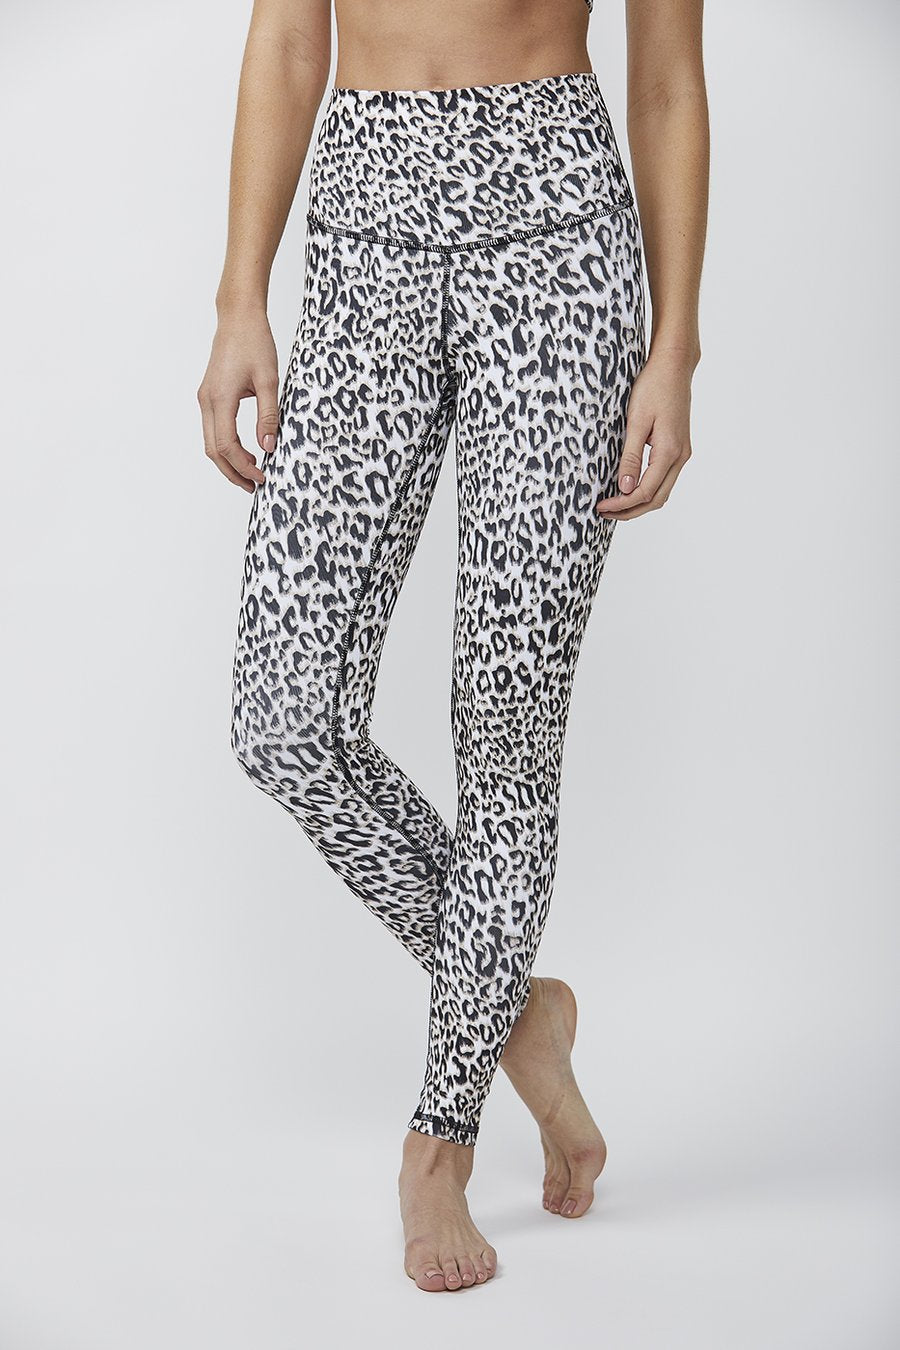 Signature Tight: Leopard